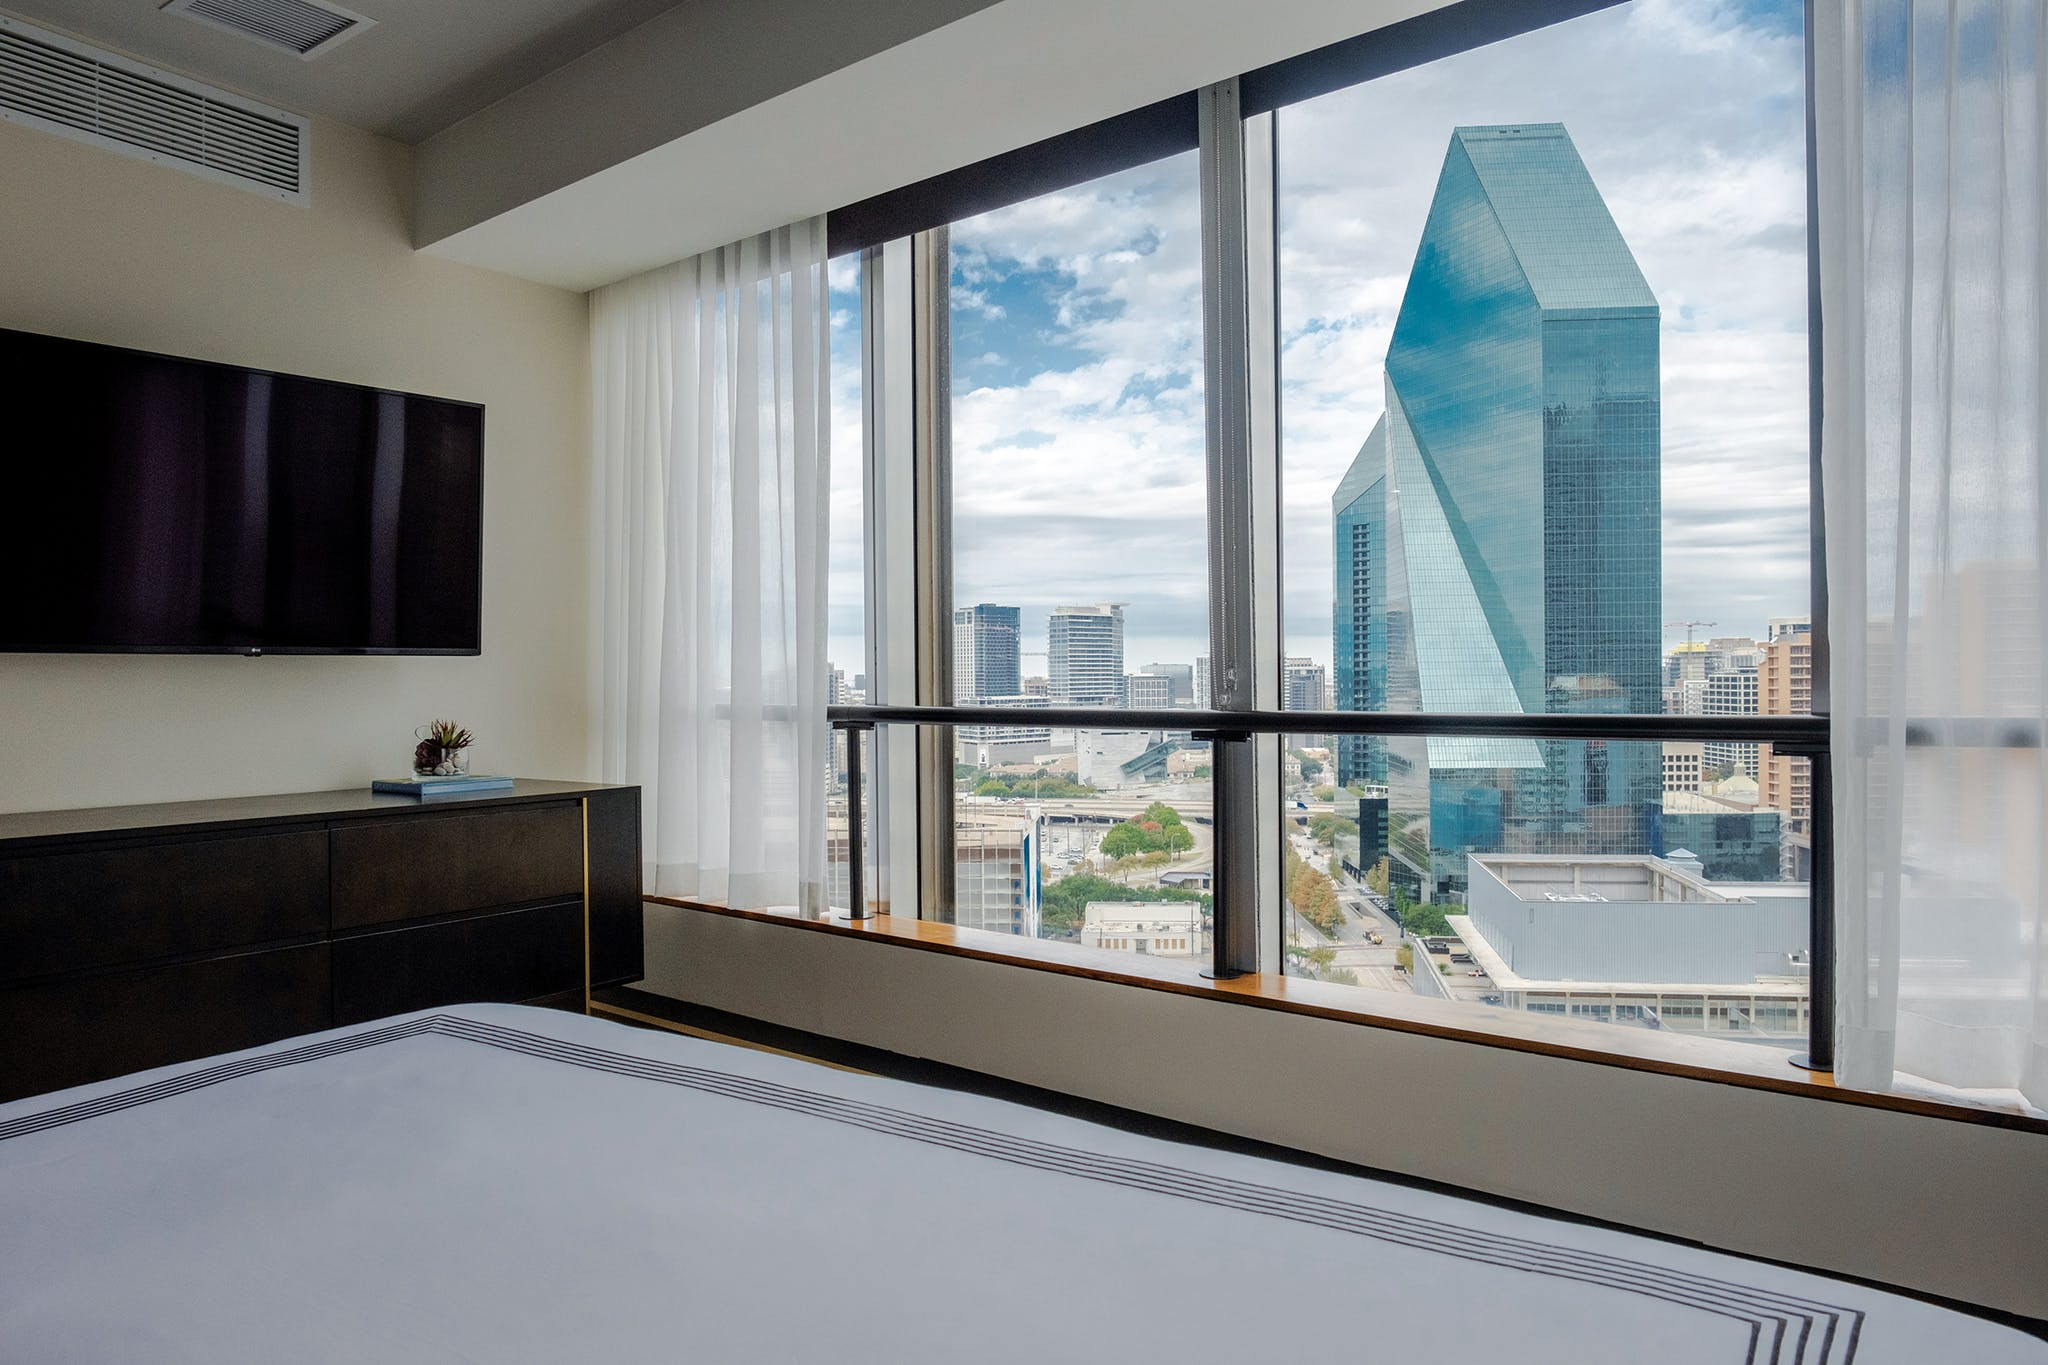 In most guest rooms, the beds also face views of downtown Dallas (a TV is discreetly situated off to the side). The hotel is a short stroll away from the Adolphus hotel, which also underwent a recent renovation, and the Dahl-designed Neiman Marcus flagship.